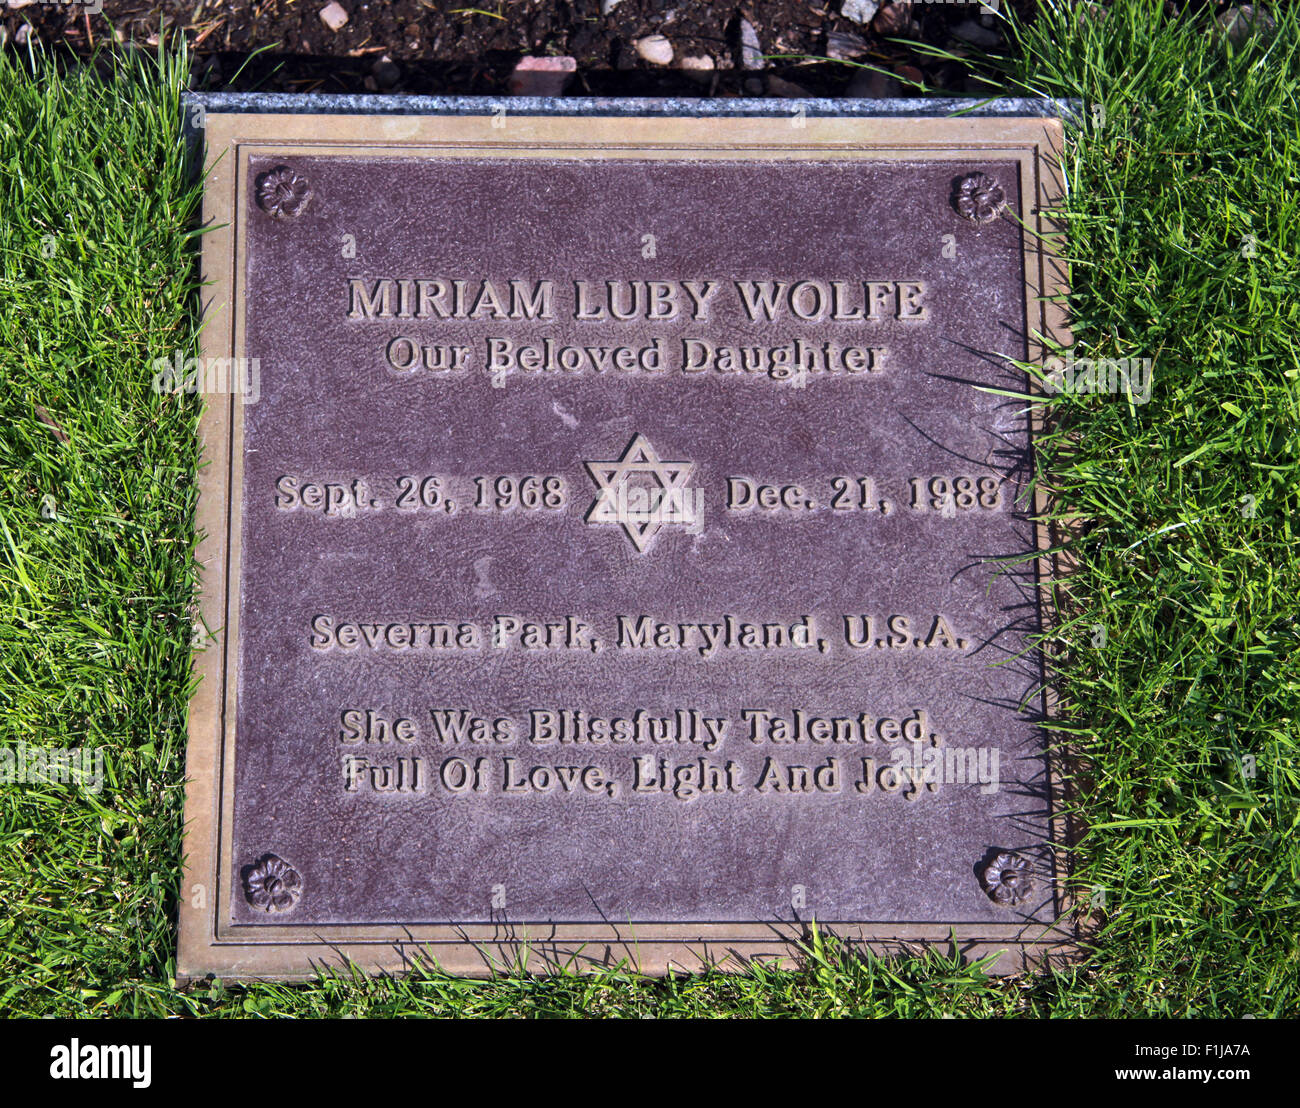 Luby Wolfe Severna Park Maryland Jewish religion,Scotland,Lodge,Visitors,Centre,DLVC,Trust,Lockerbie,Memorial,Remembrance,Scotland,Victims,Pan,Am,PanAm,flight,103,bomb,bombing,terrorist,December,1988,attack,crash,dead,site,21/12/1988,270,victims,Scottish,Town,conspiracy,blast,Tundergarth,New York,GoTonySmith,Lodge,Visitors,Centre,DLVC,Trust,Lockerbie,Memorial,Scotland,Victims,Pan,Am,PanAm,flight,103,bomb,bombing,terrorist,December,1988,attack,crash,dead,site,21/12/1988,270,victims,Scottish,Town,conspiracy,blast,Tundergarth,Room,garden,of,Dryfesdale,Cemetery,news,Cultural,understanding,remembering,innocent,transatlantic,Frankfurt,Detroit,Libyan,Libya,Colonel Muammar Gaddafi,civil,case,compensation,terrorism,PA103,30,30years,years,Syracuse,University,SU,family,collections,Story,Archive,Archives,40,35,Timeline,saga,disaster,air,Scholars,program,programs,remembrance,Clipper Maid of the Seas,N739PA,Boeing,727,plane,aircraft,Scotland,UK,United Kingdom,GB,Great Britain,resting,place,Buy Pictures of,Buy Images Of,New York,al megrahi,30 Years